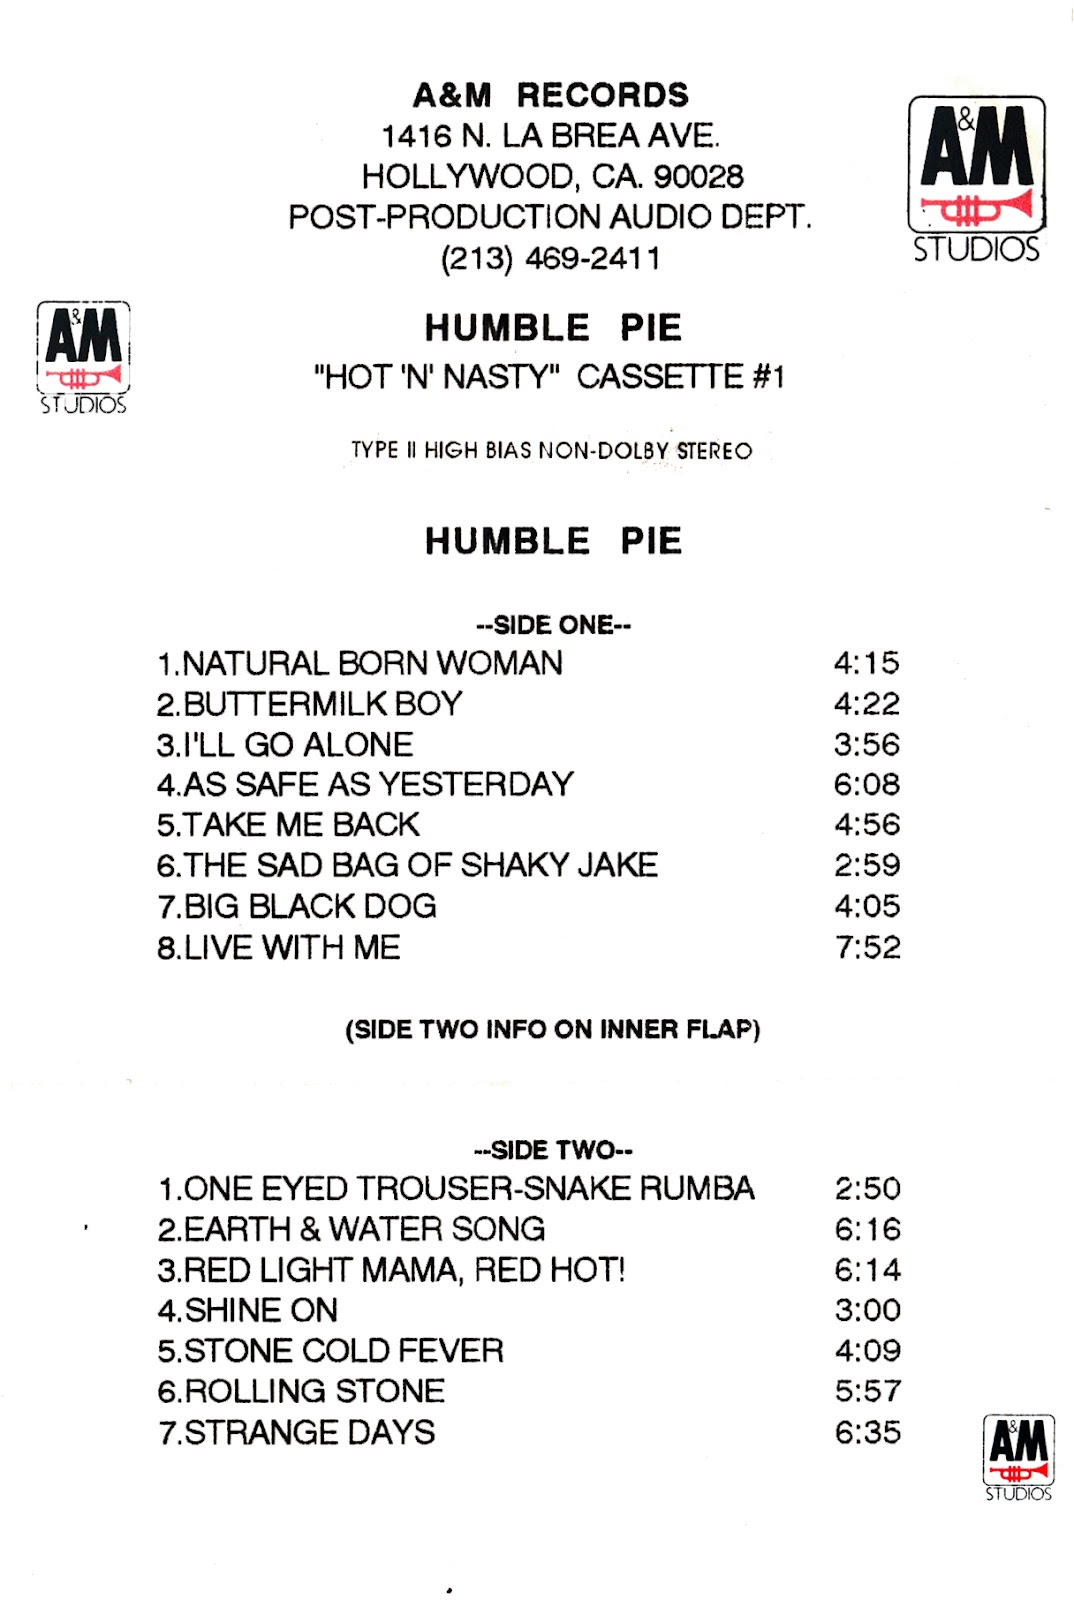 Humble pie coupons